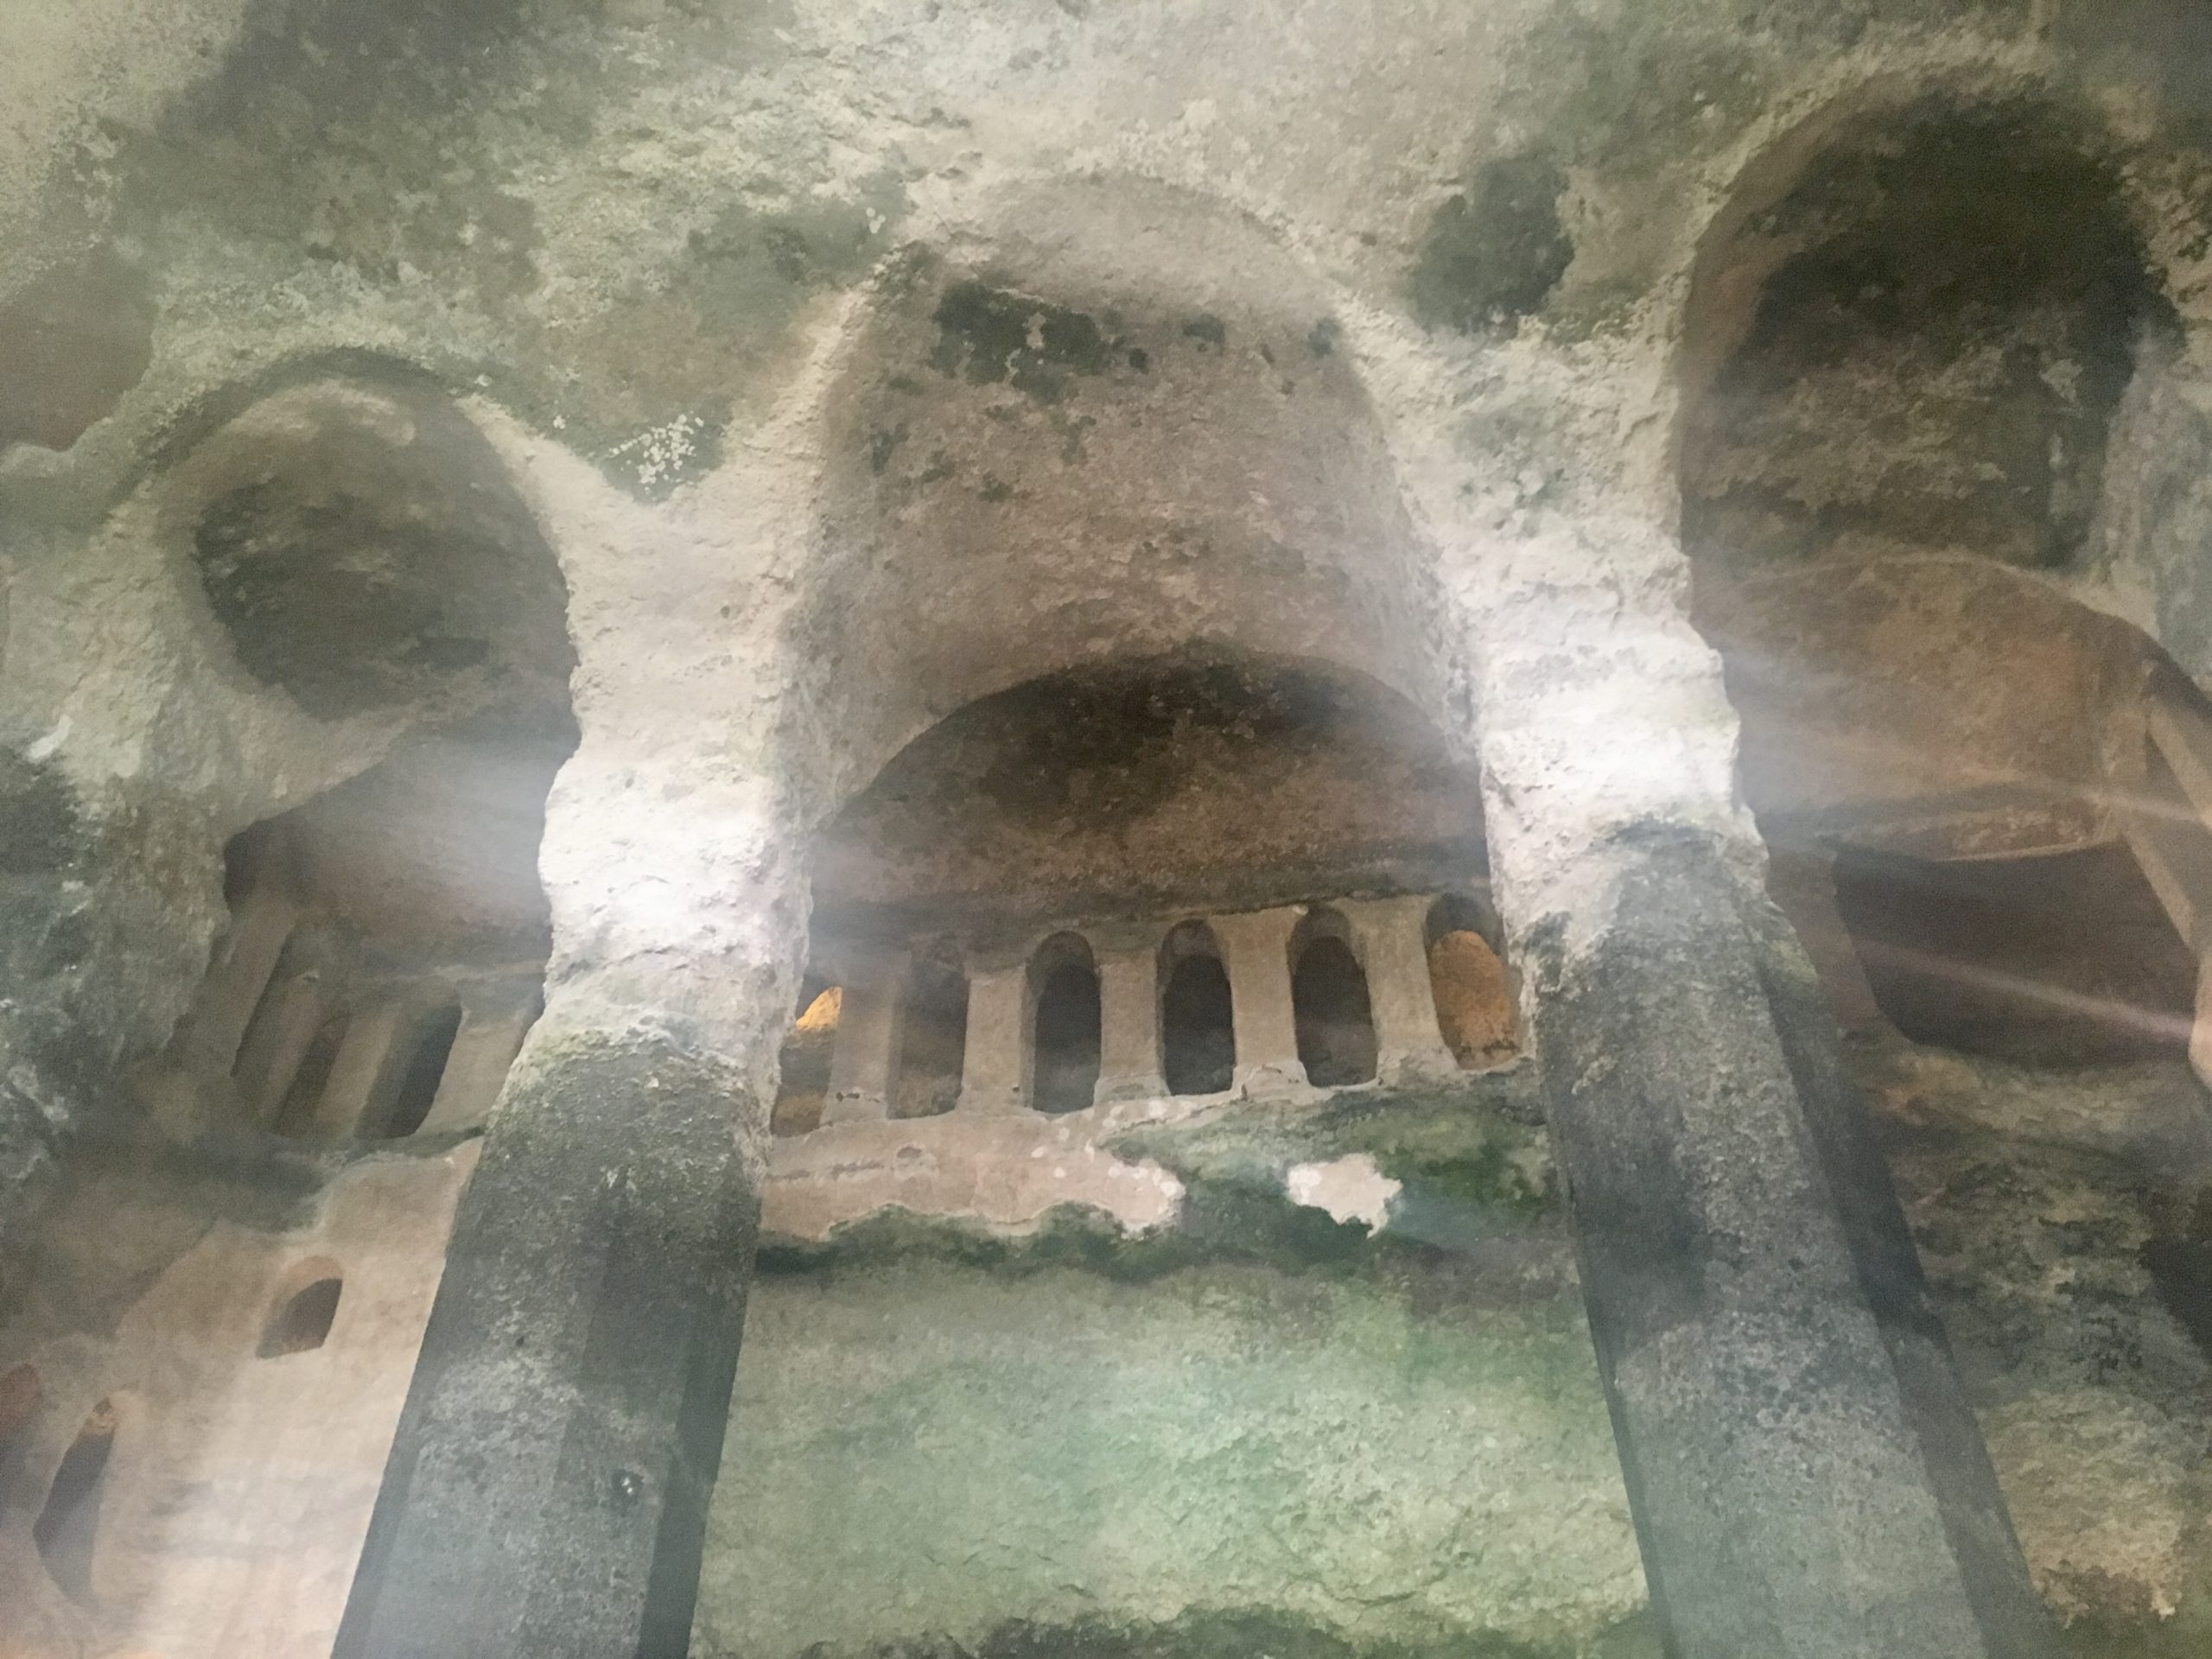 Underground Church of St Jean, Aubeterre-Sur-Dronne. Also known as the Monolithic church, Eglise Monolithique, or the troglodyte church